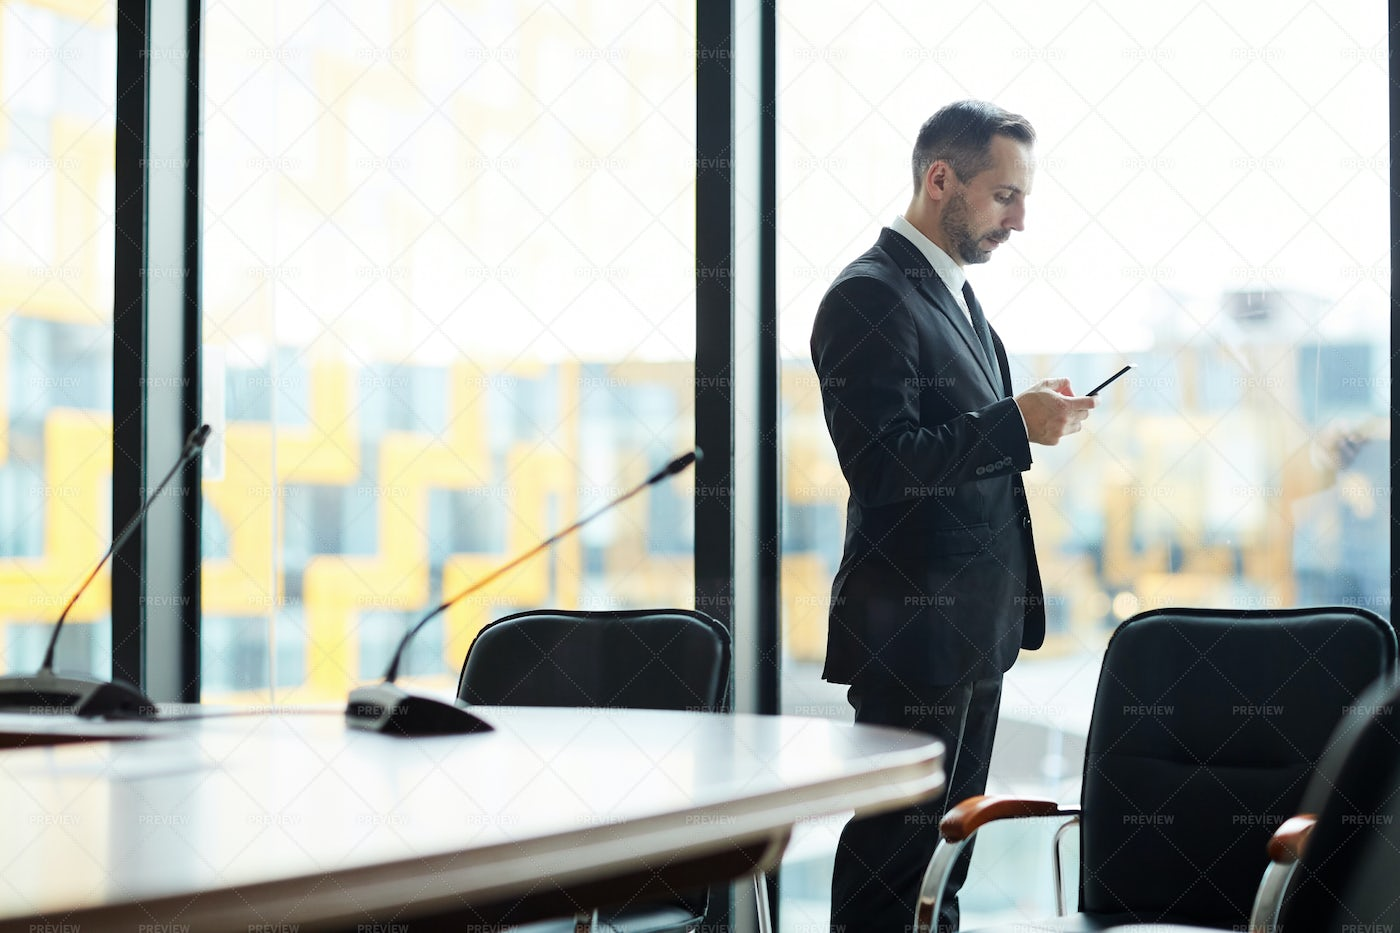 Delegate In Conference Hall: Stock Photos